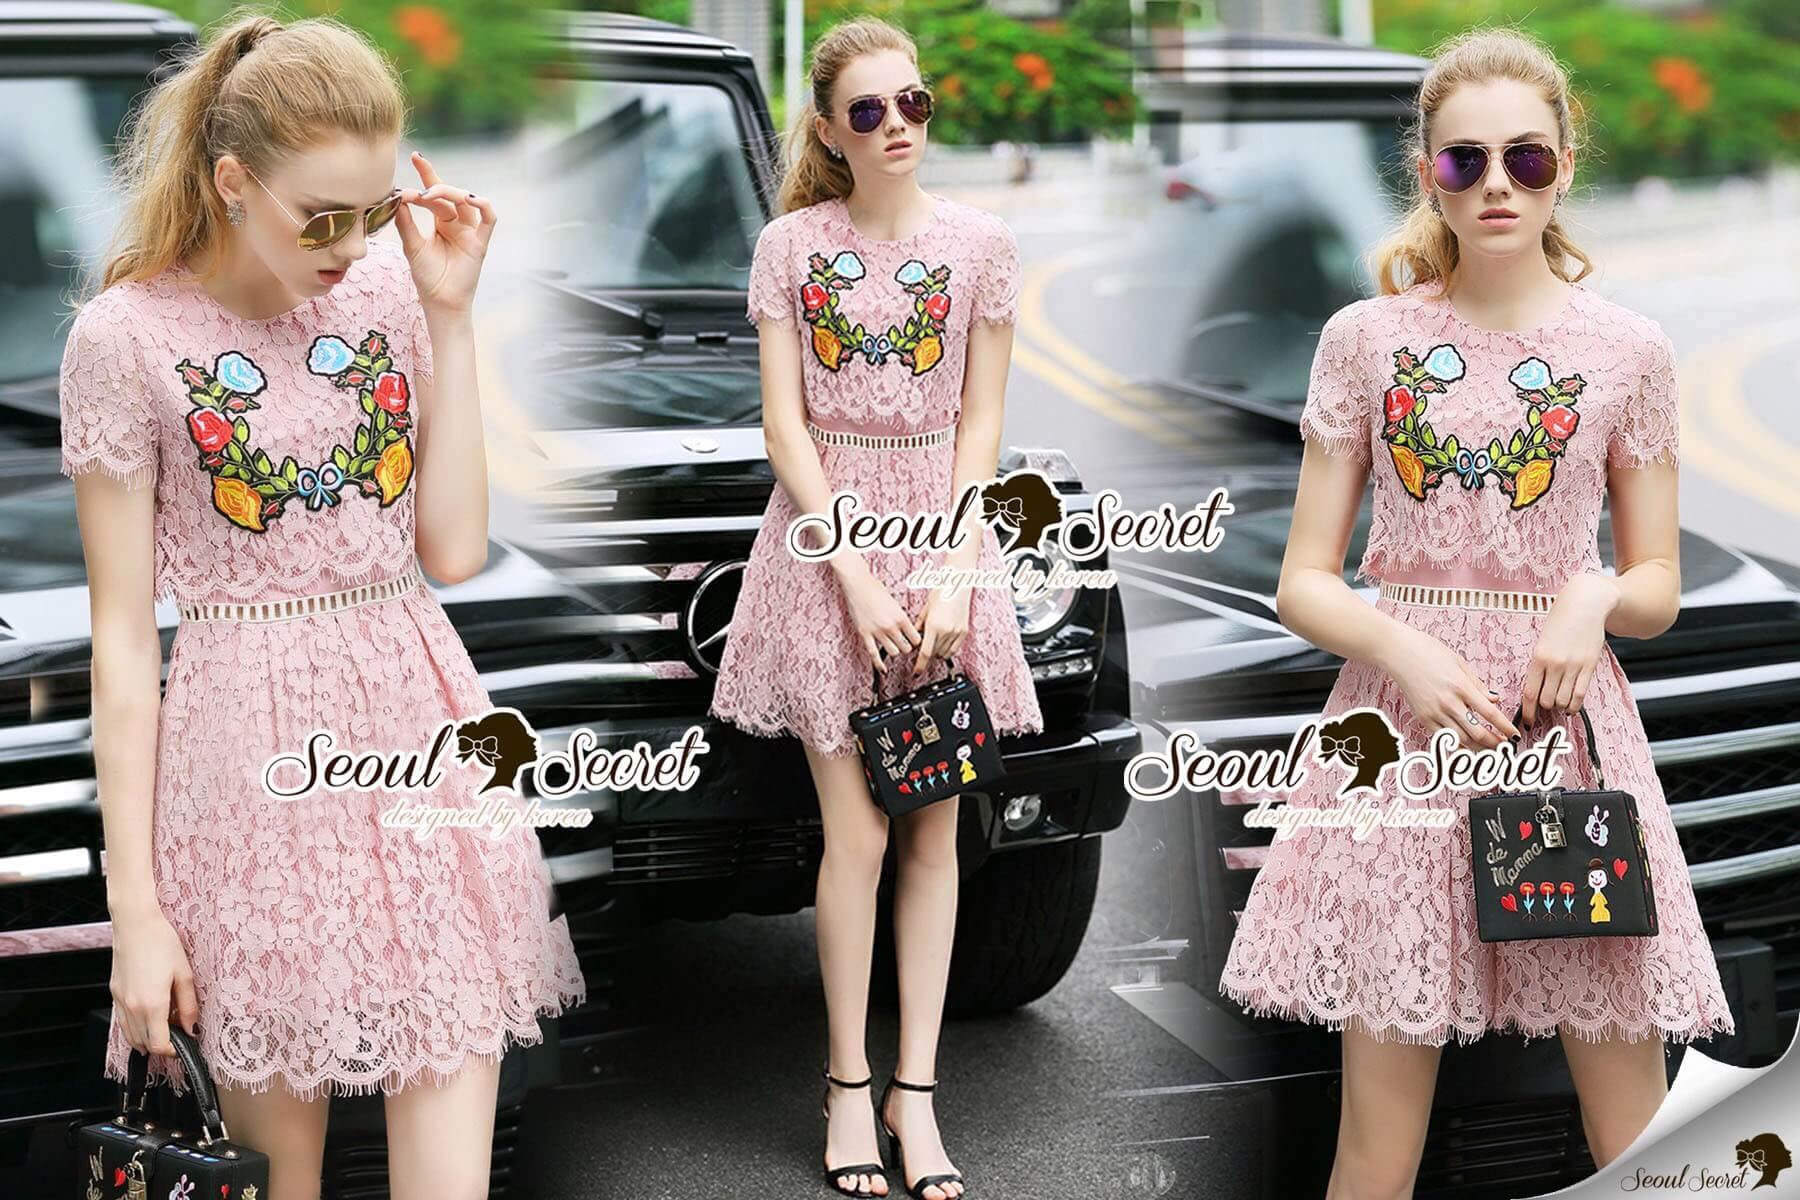 Seoul Secret Say's... Salmon Pink Lace Chic Bloom Stick Dress